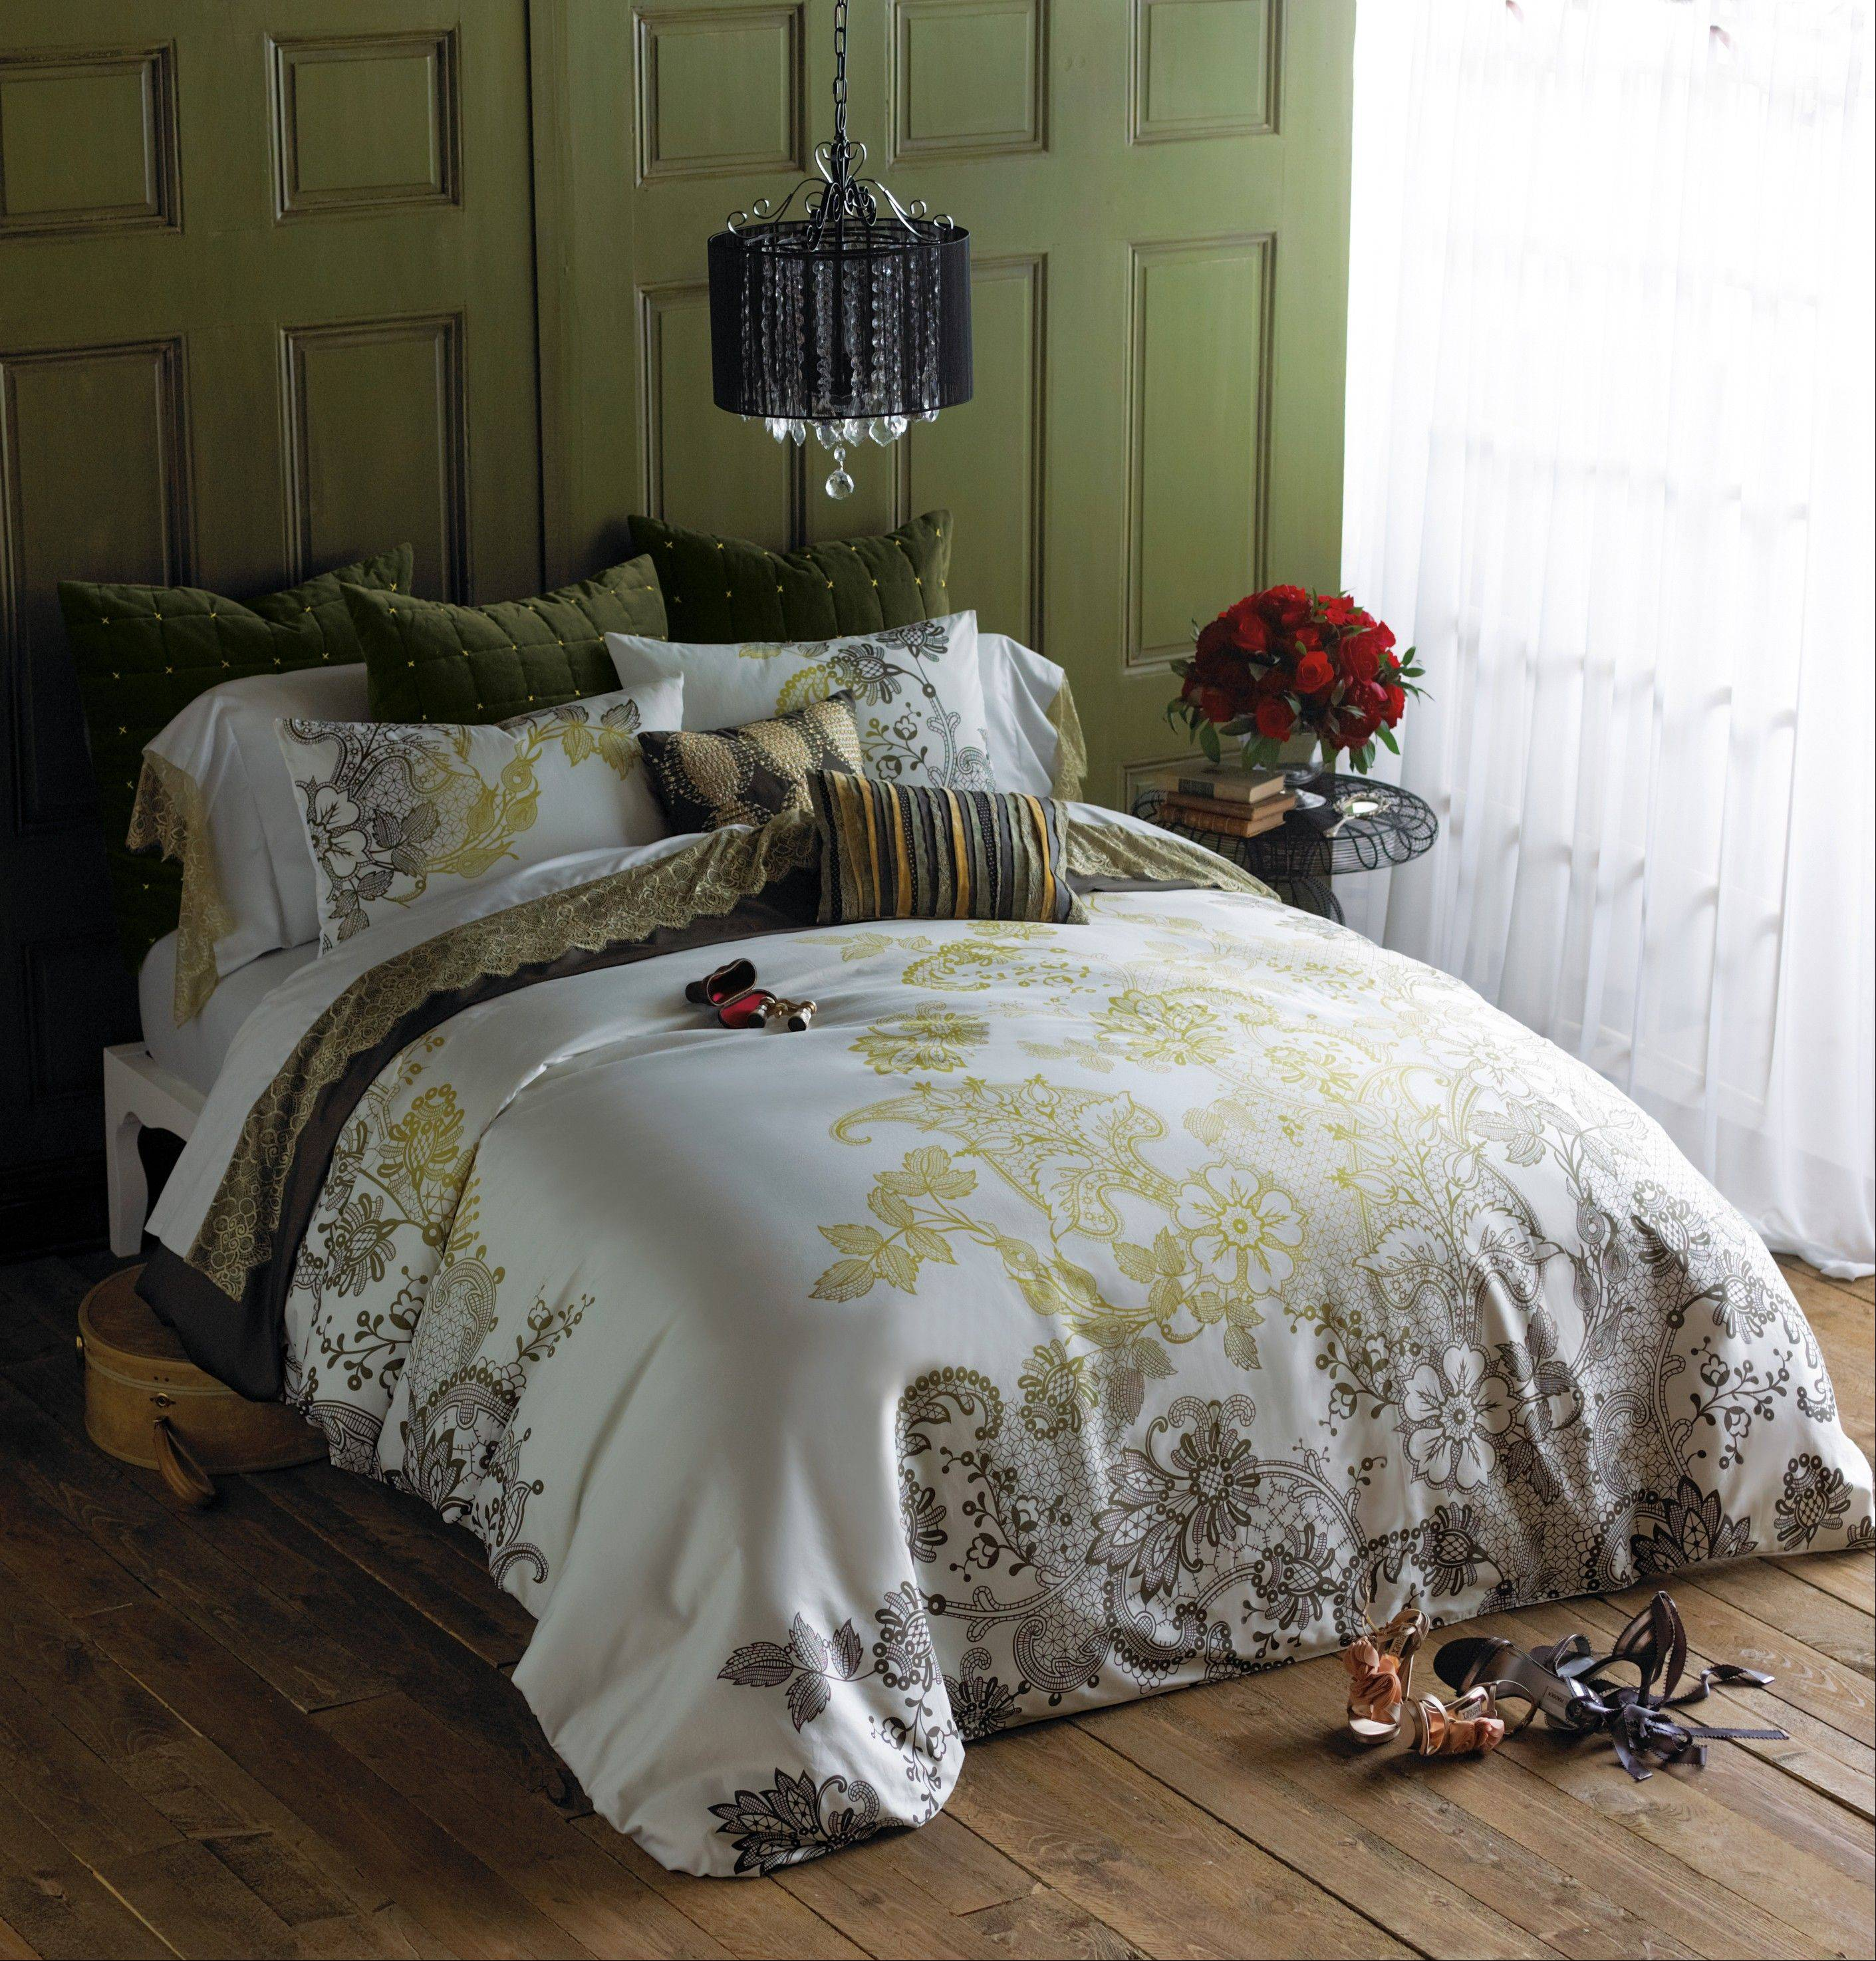 A lacy graphic in gold and graphite is shown on the Evita duvet set ($275.-295.), and a deep gold lace trims Tango sheets ($50.-135.) for a luxe, romantic bedding ensemble.